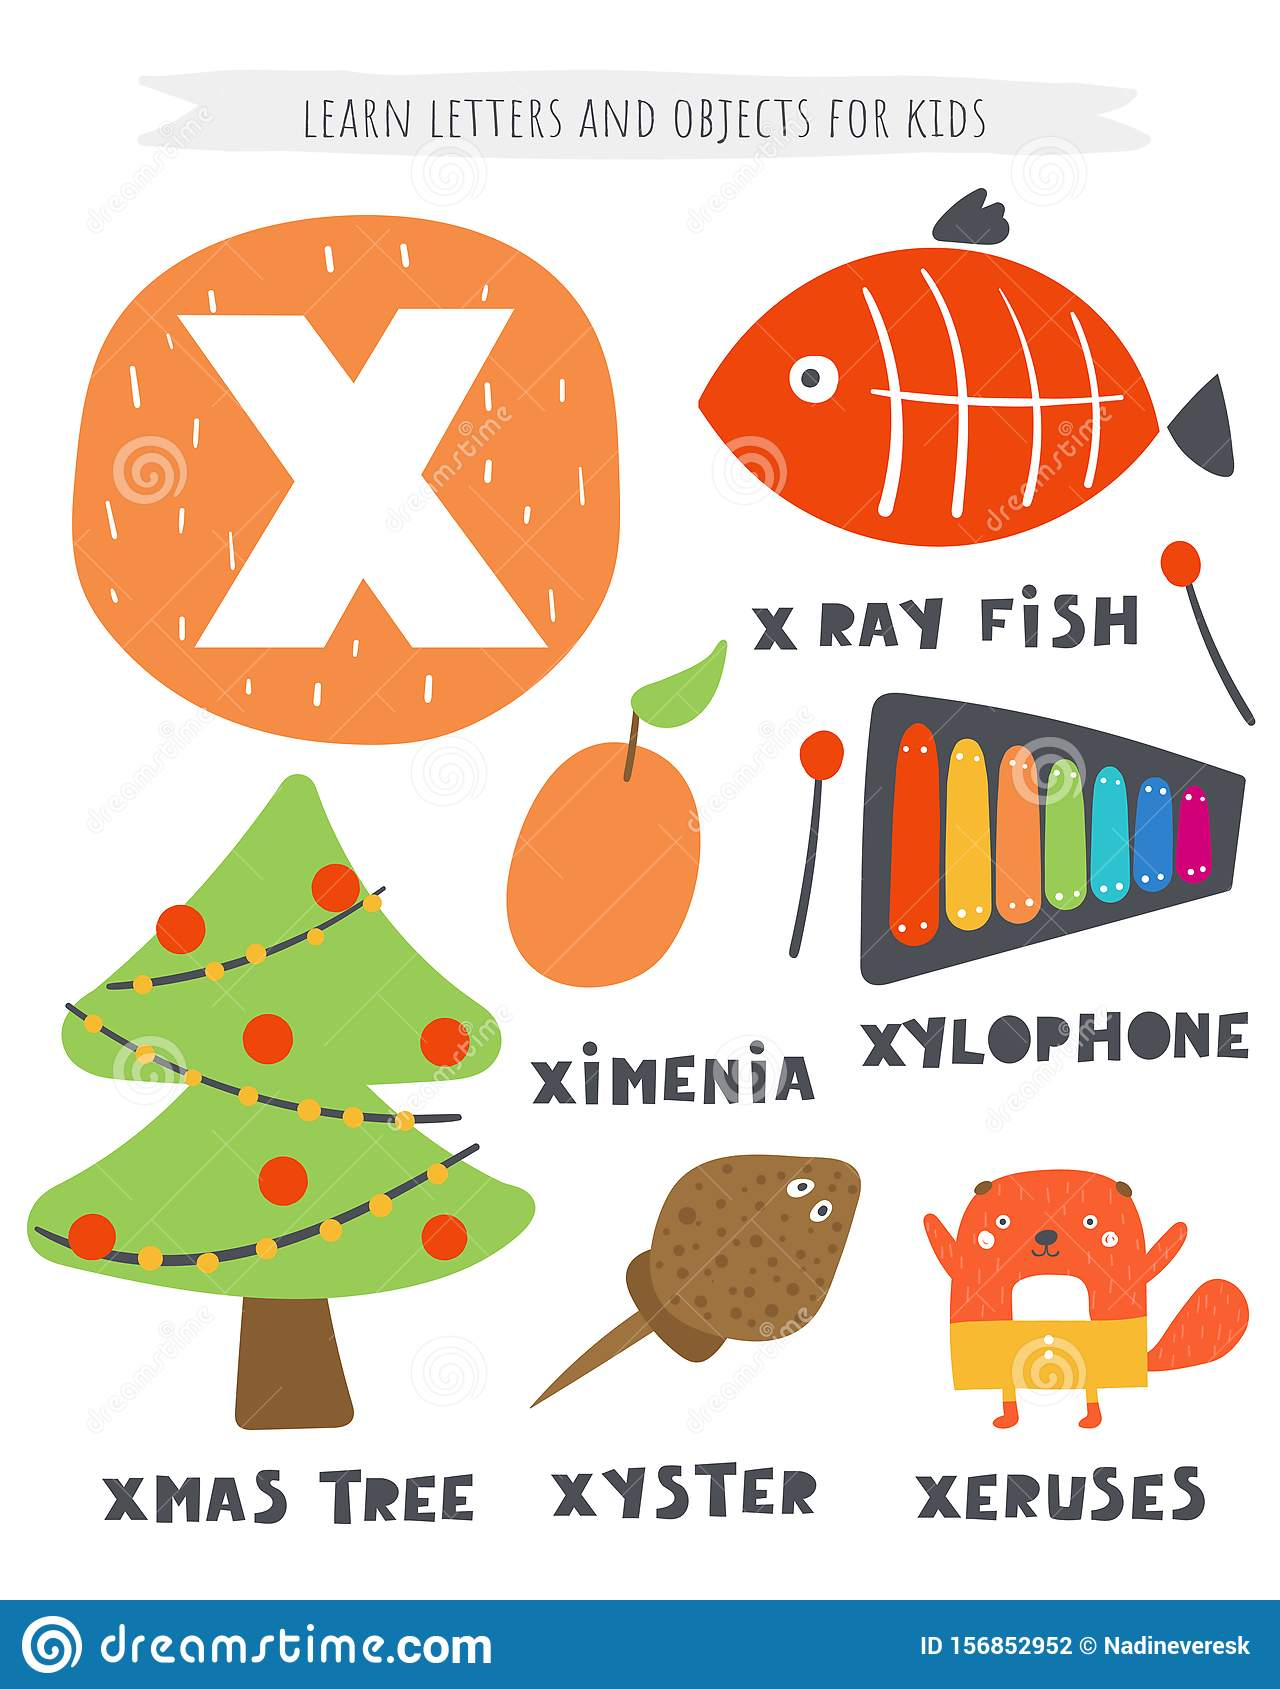 X Letter Objects And Animals Including Xmas Tree X Ray